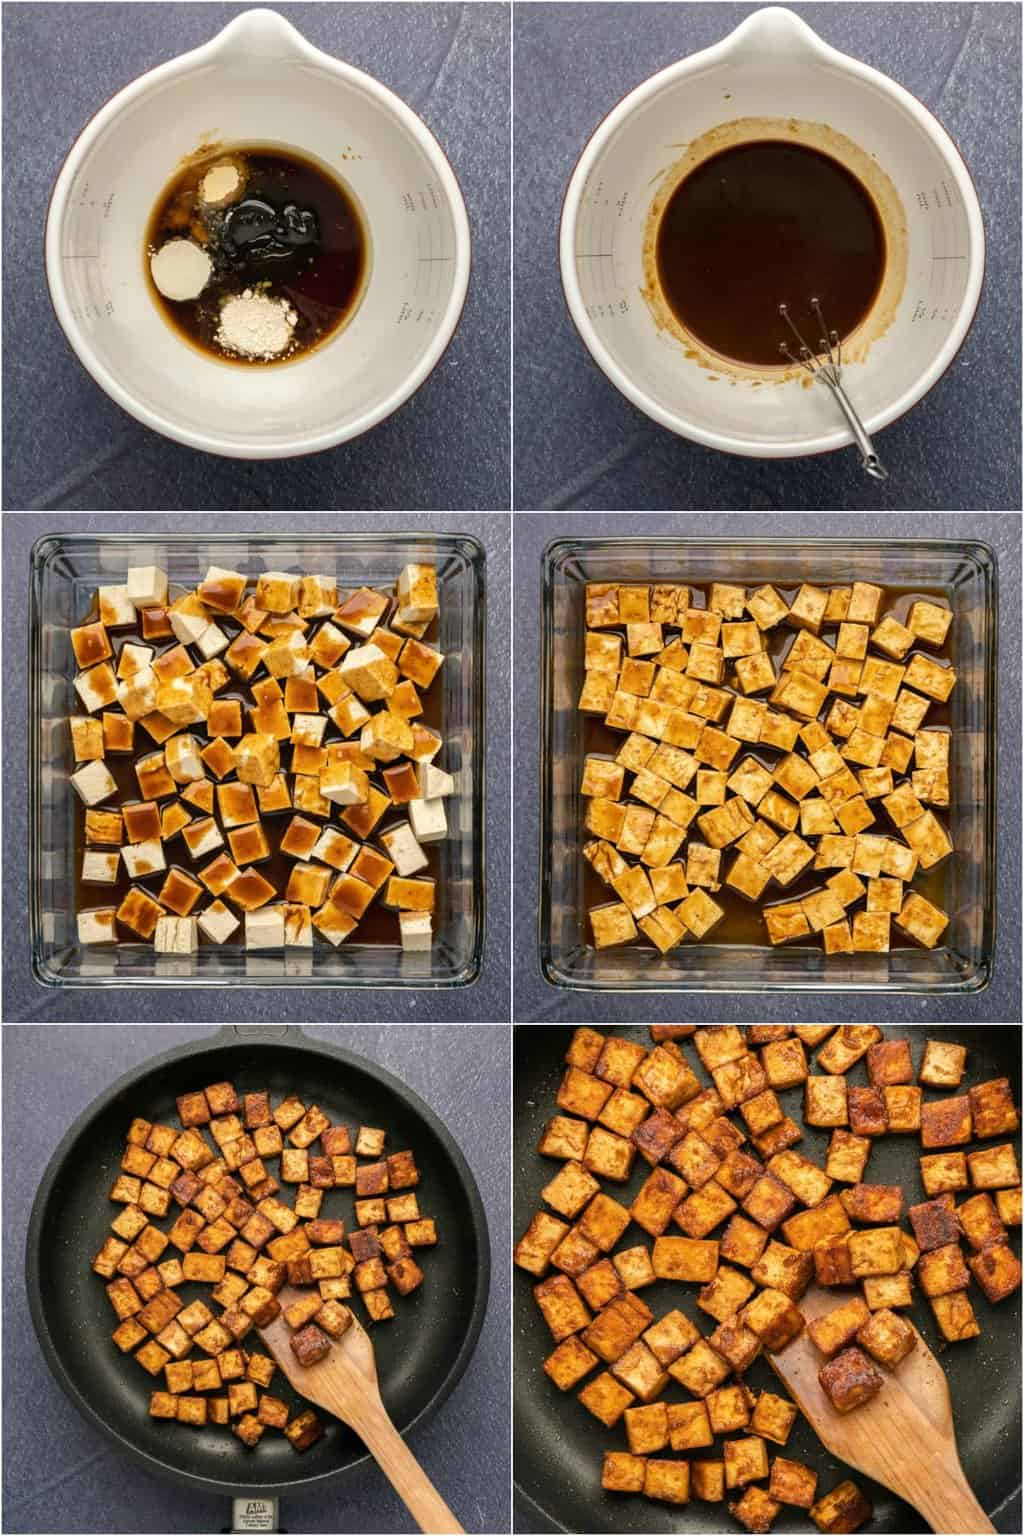 Step by step process photos of making marinated tofu.